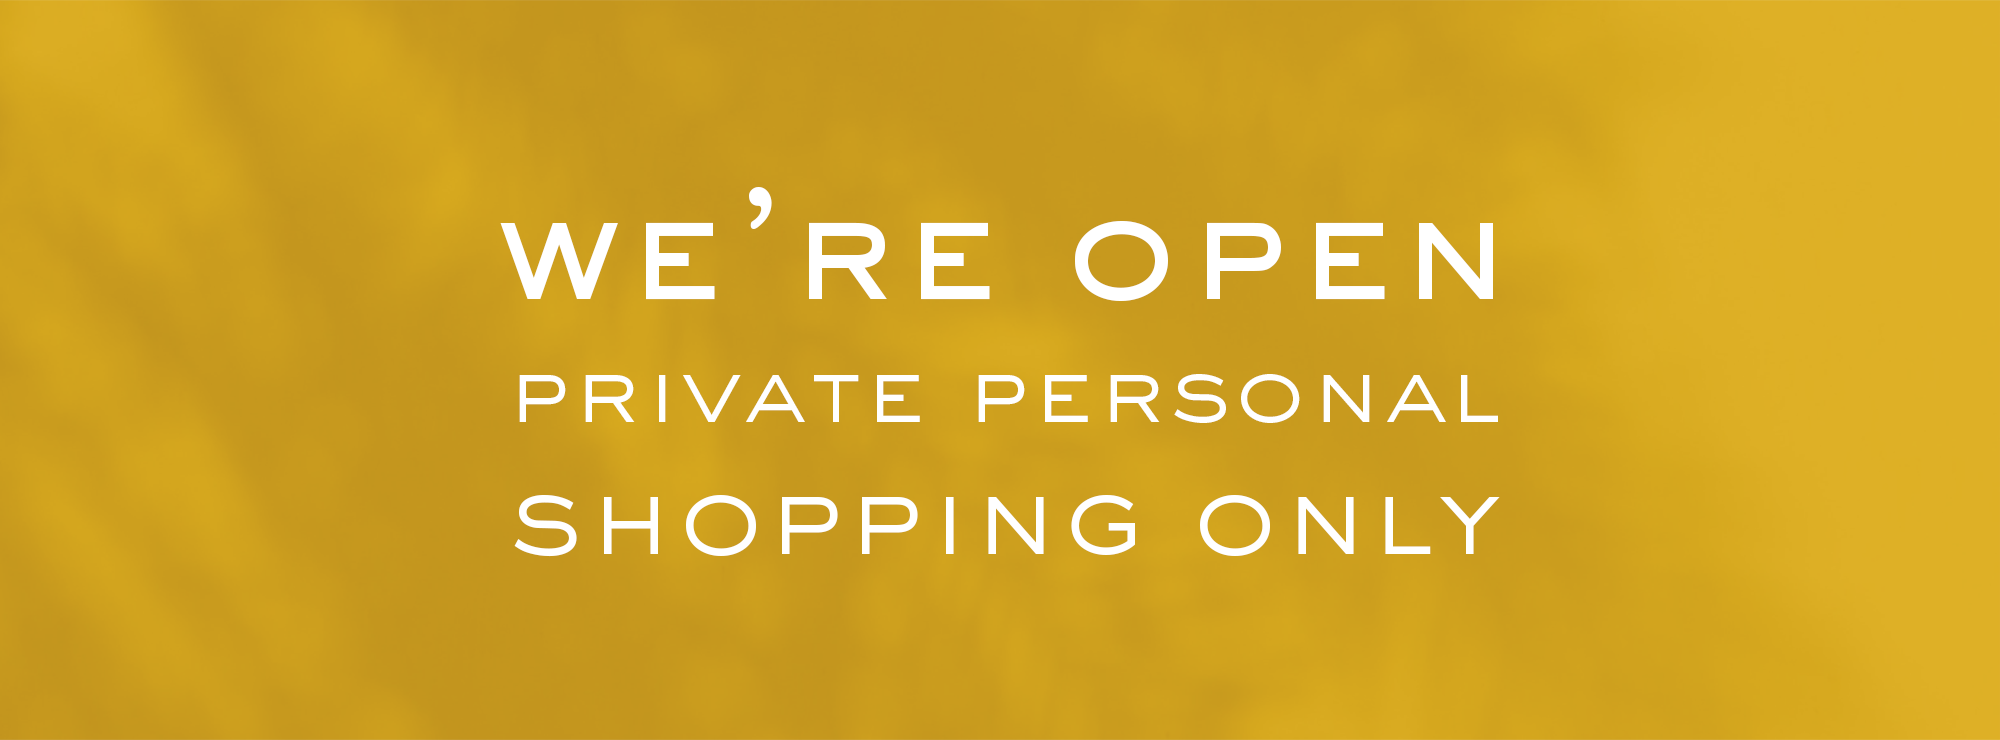 Private Personal Shopping Only